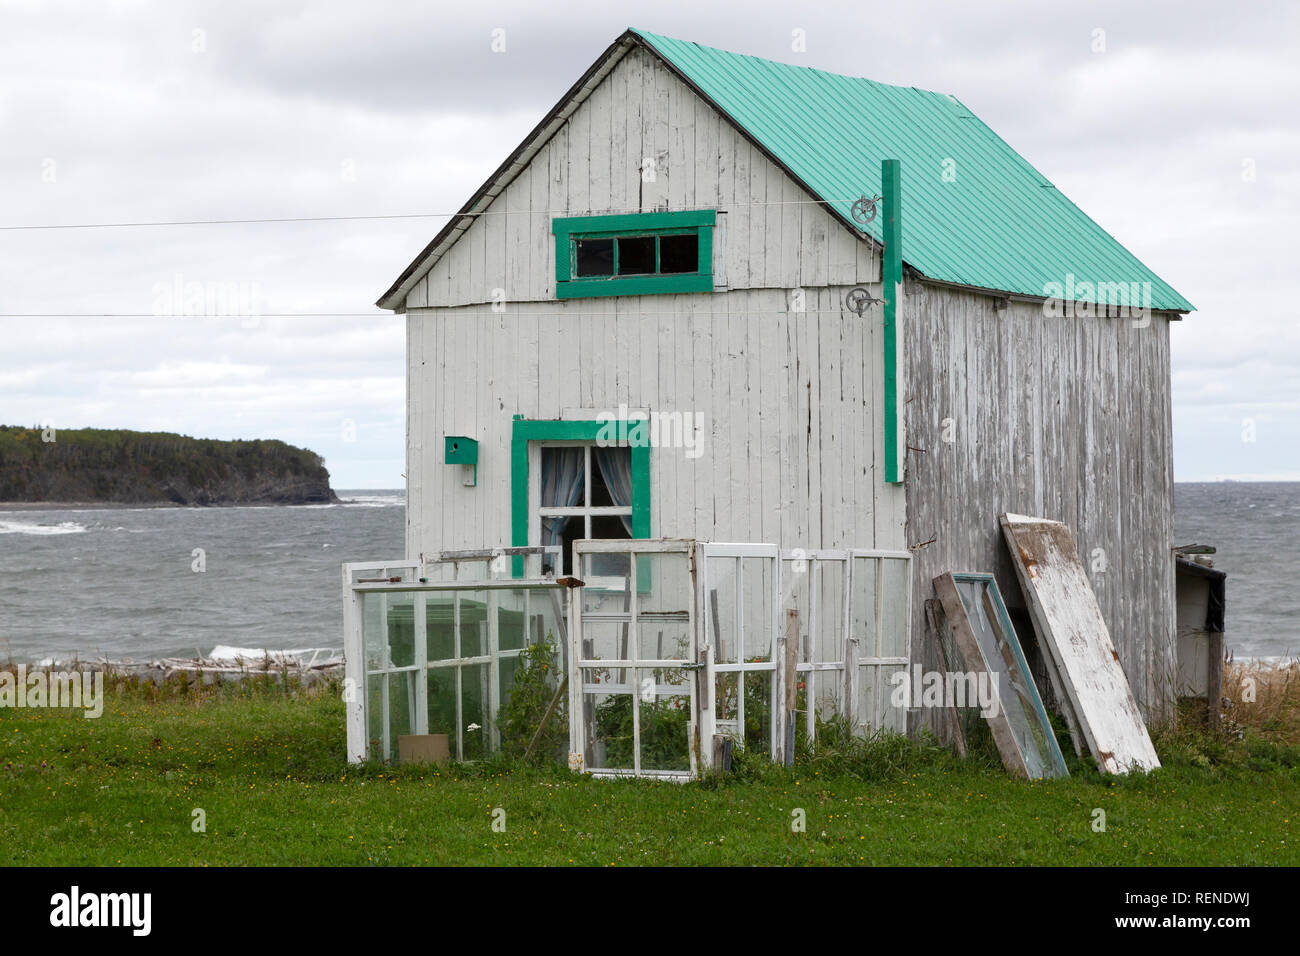 A traditional building by the coast on the Gaspé Peninsula of Quebec, Canada. The building is constructed of wood. - Stock Image